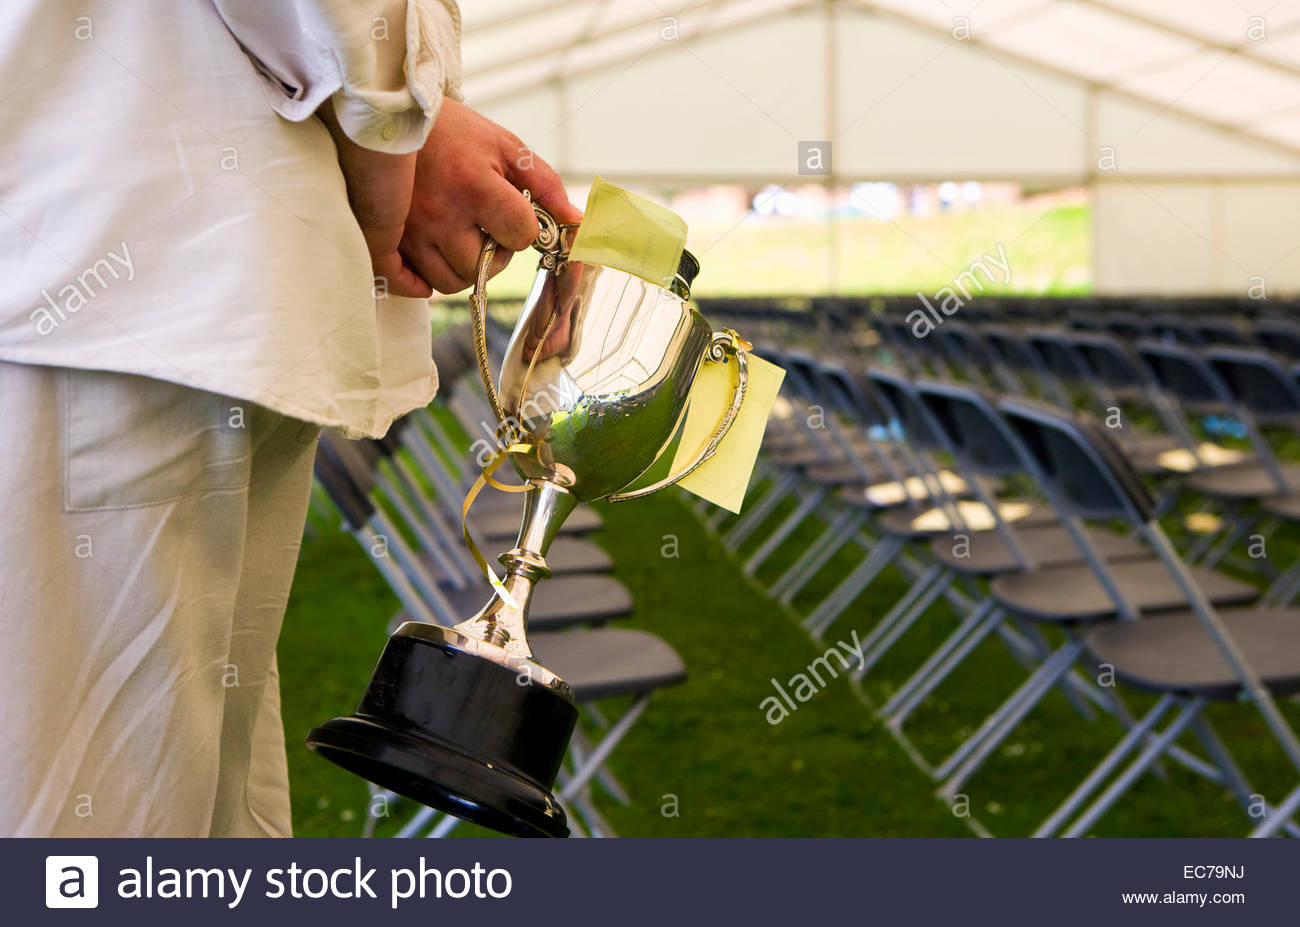 Judge at show holding a trophy - Stock Image